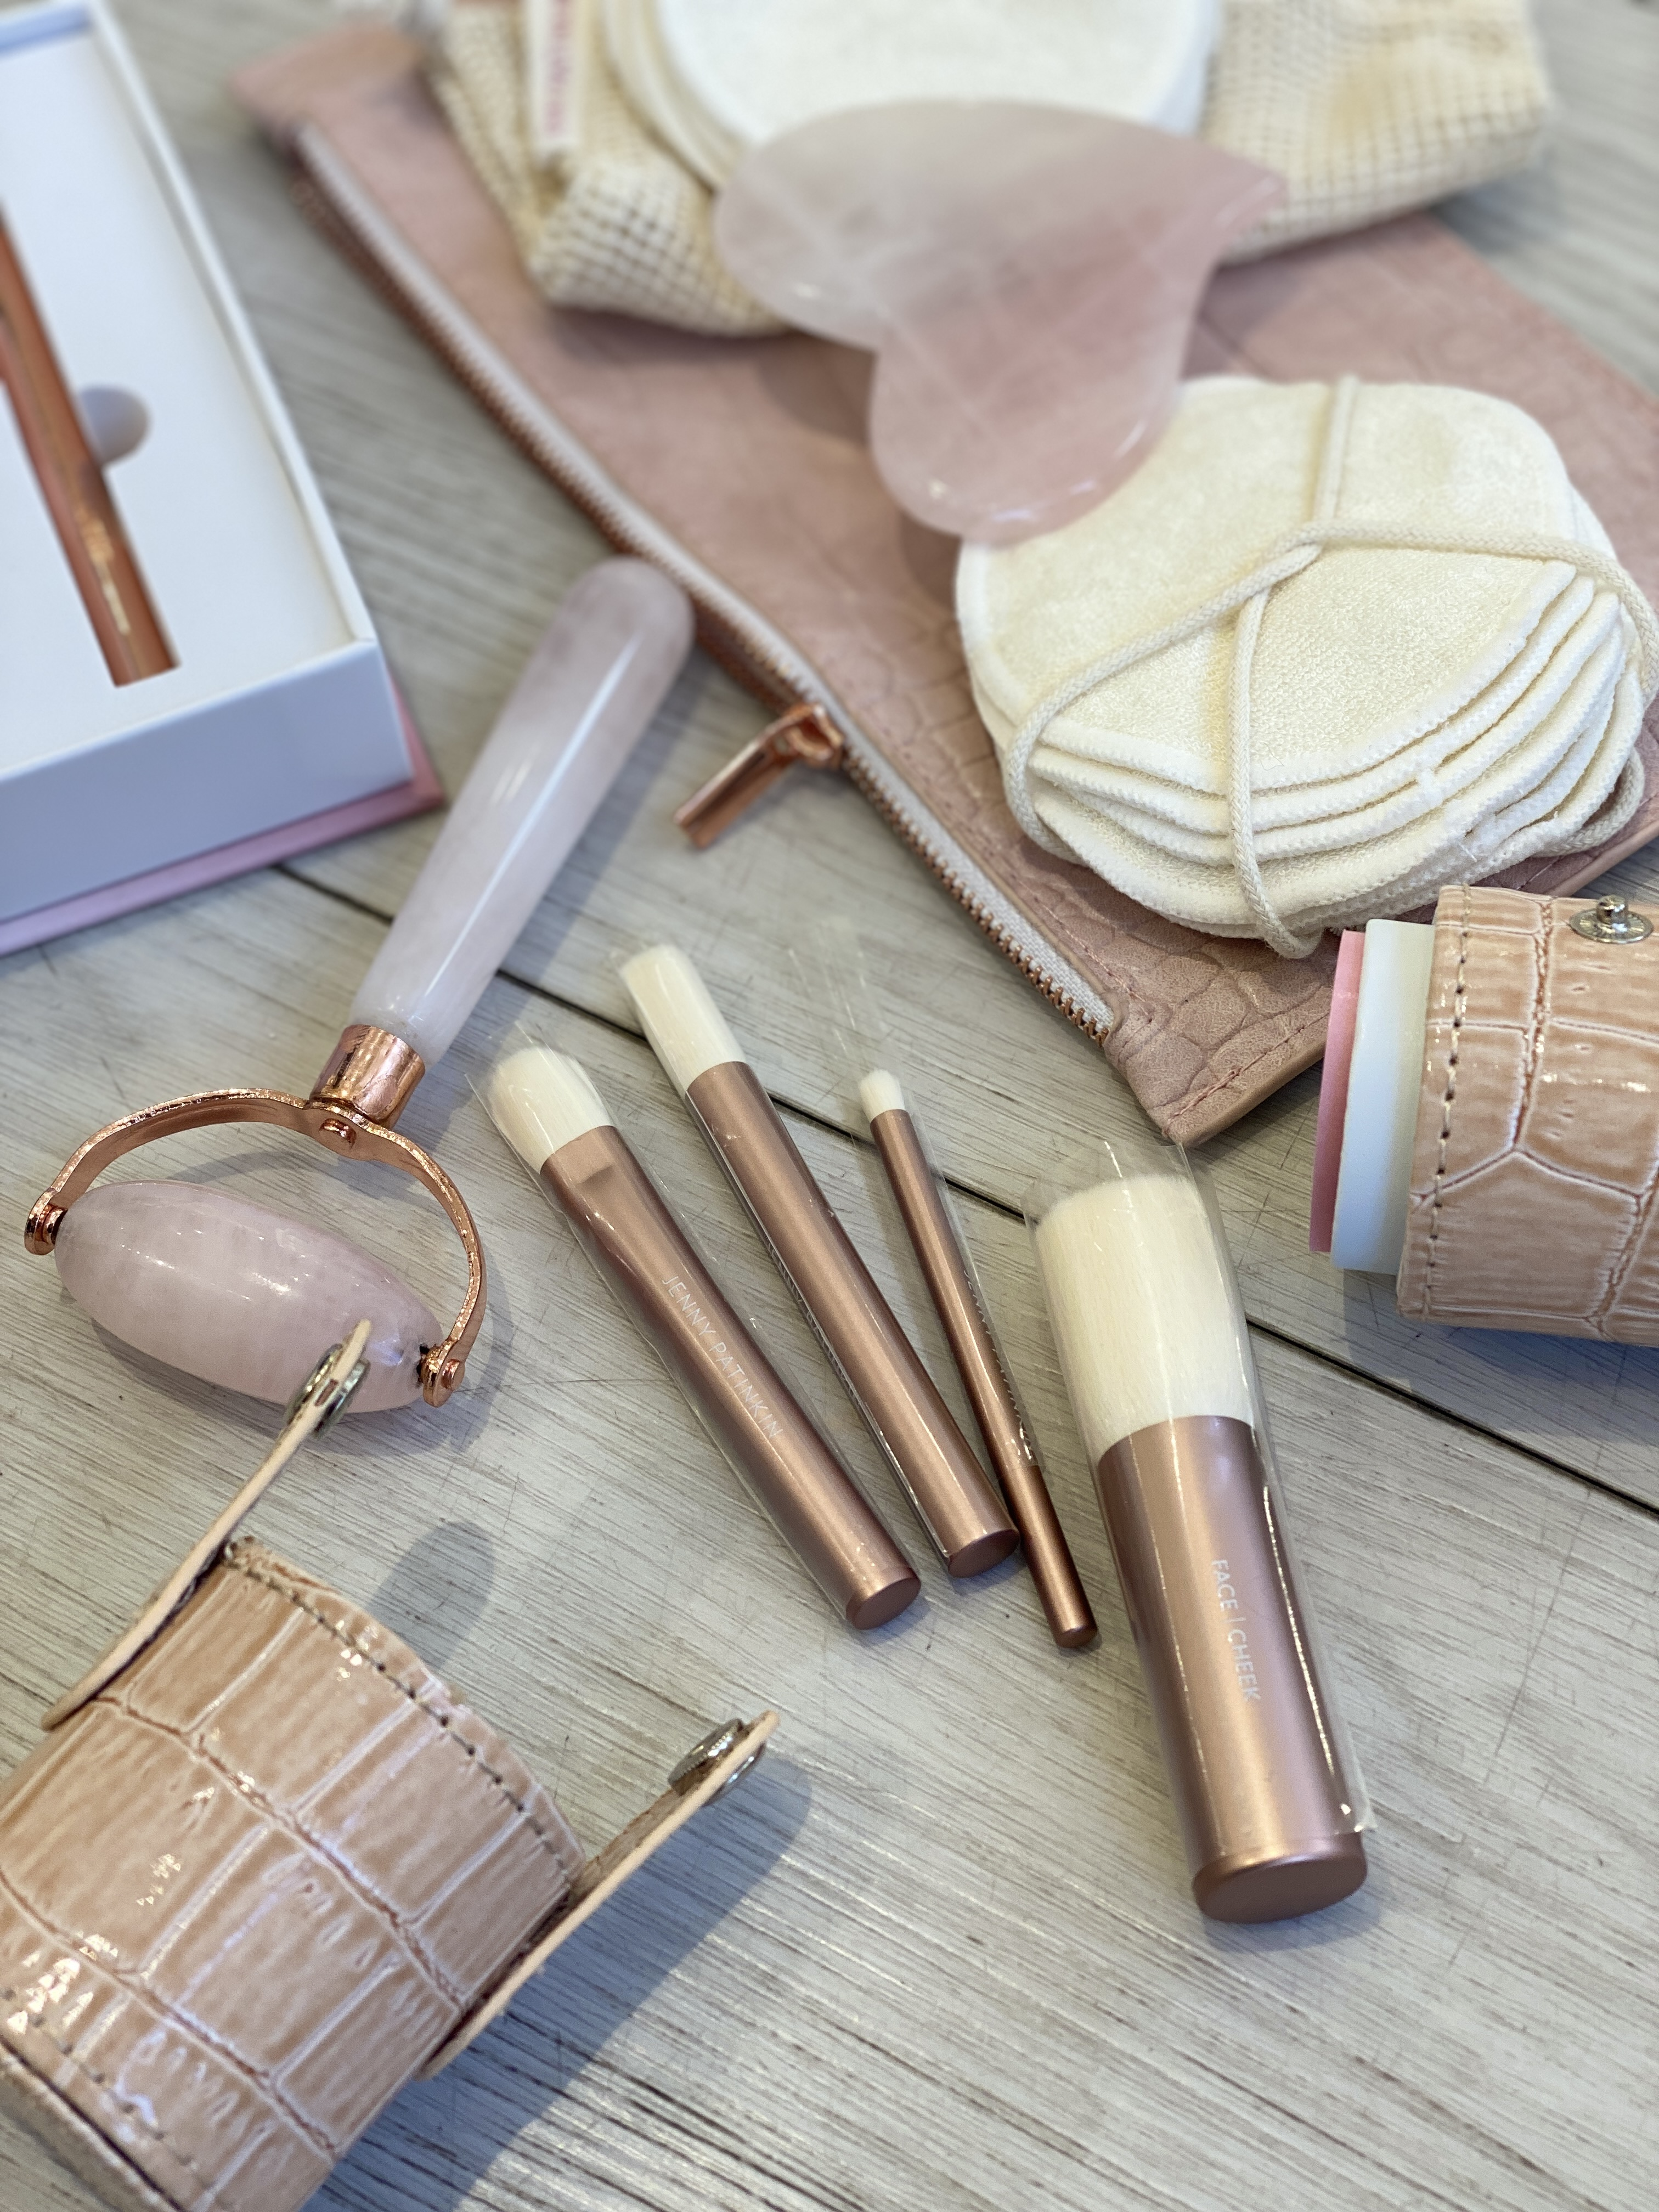 Cos Bar Sale by popular Monterey beauty blog, Haute Beauty Guide: image of a rose quarts face roller, make up brushes, and round cloth pads.